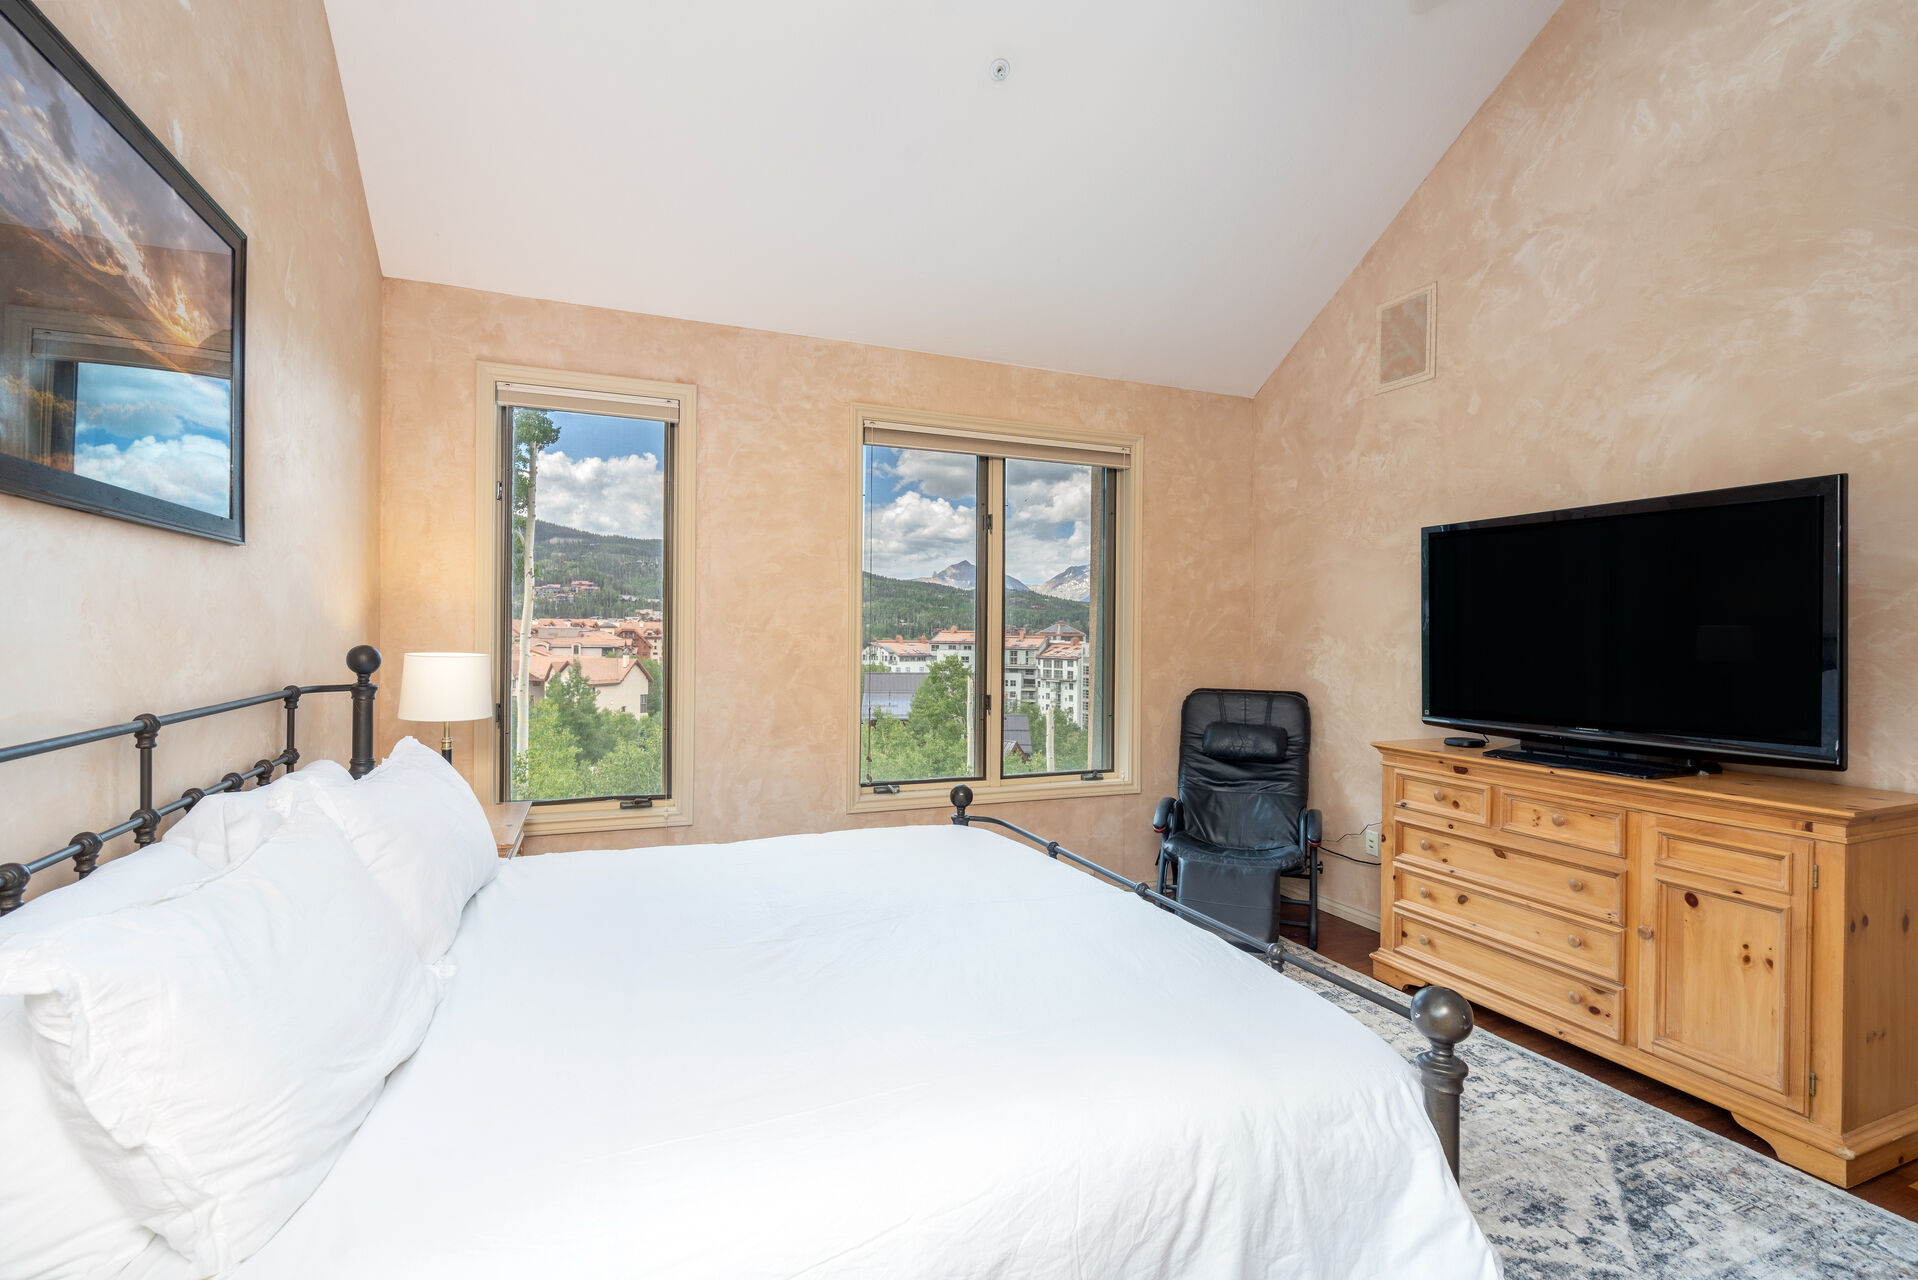 Bedroom with white bed and wood chest of drawers